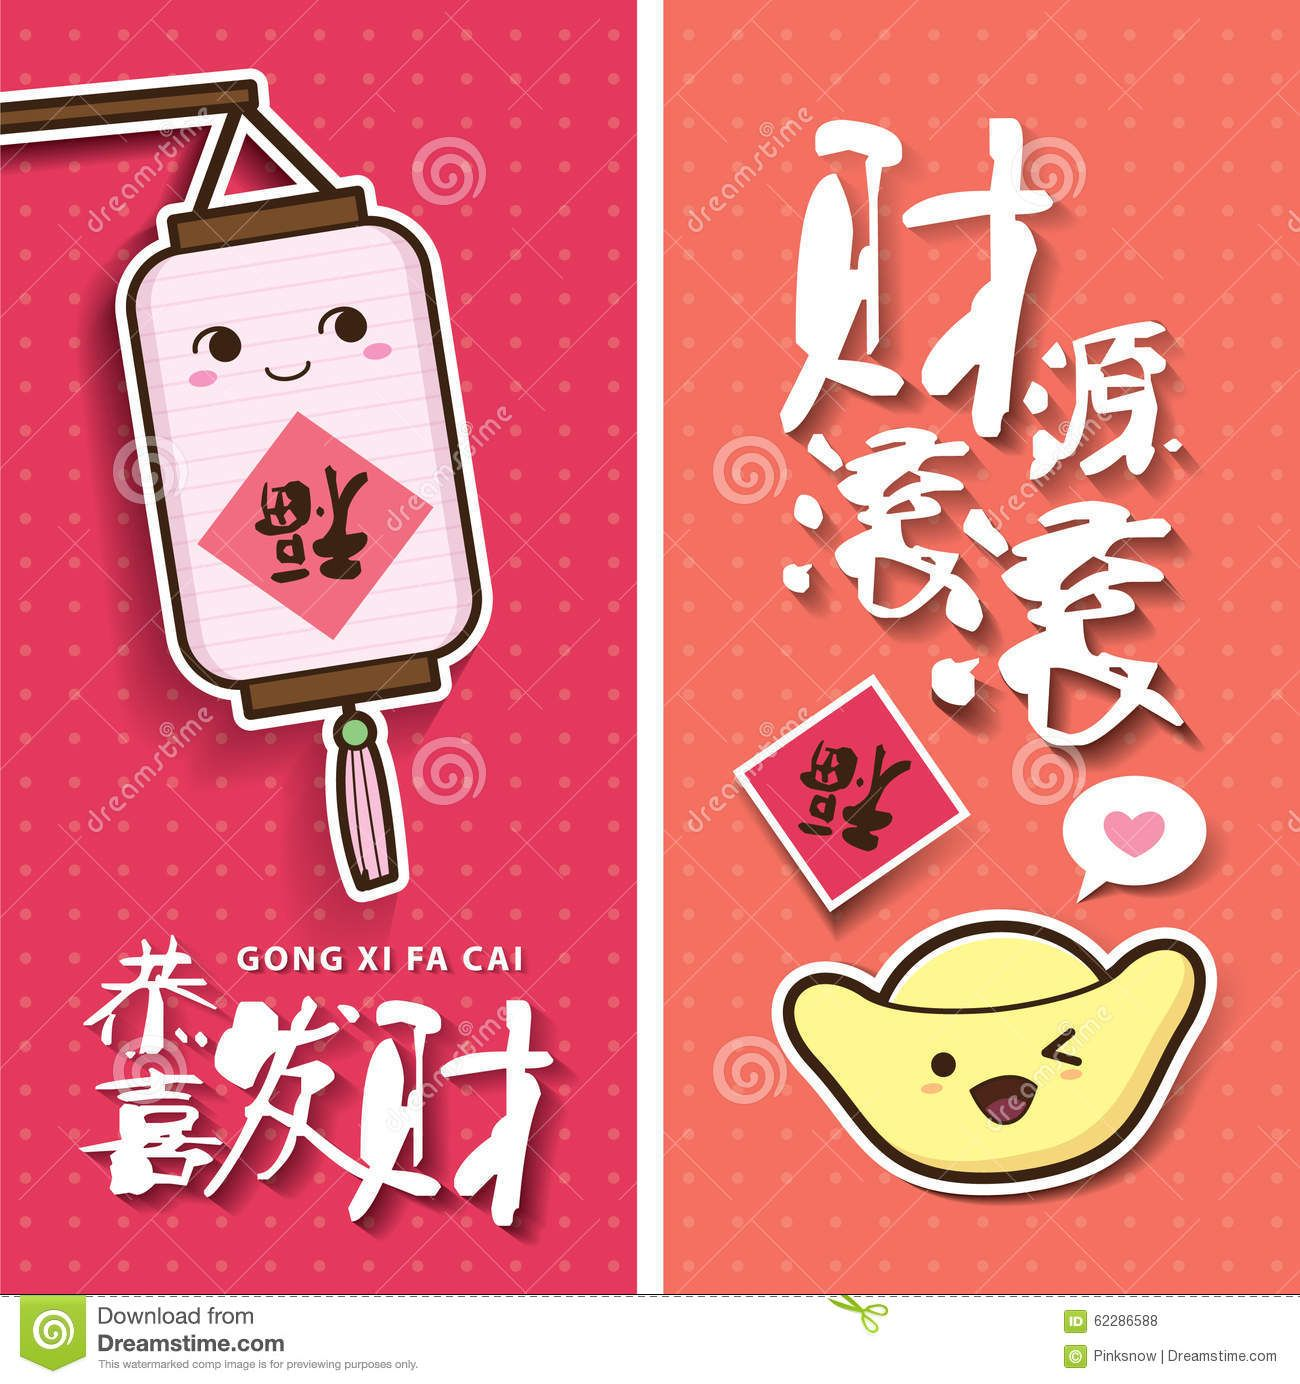 Chinese new year cards. Translation of Chinese text